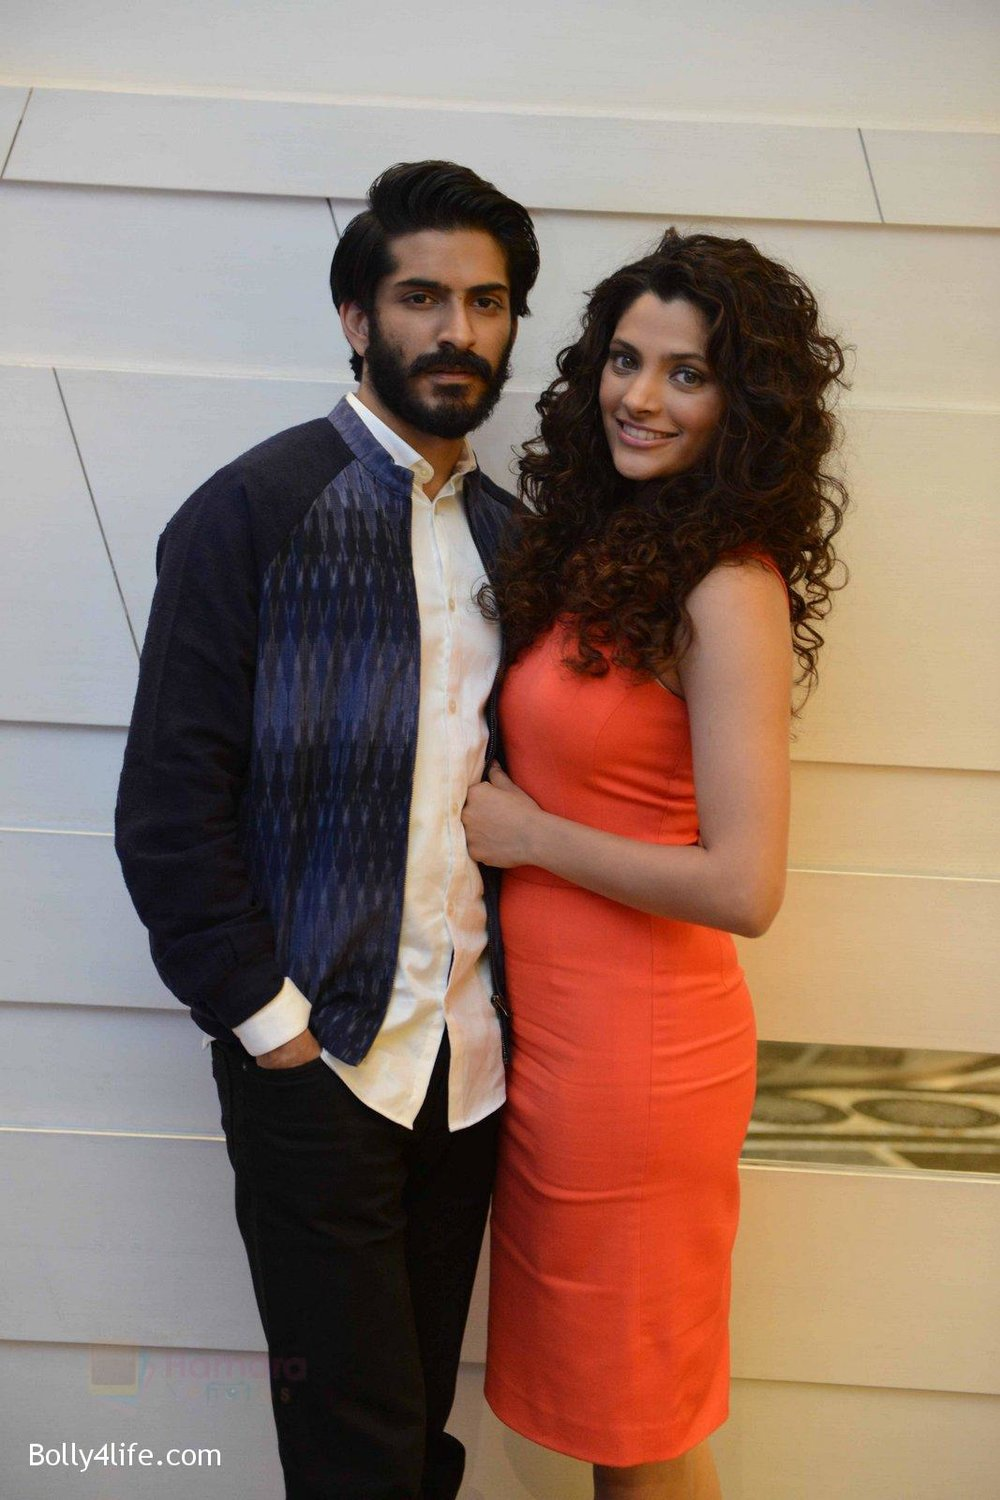 Harshvardhan-Kapoor-Saiyami-Kher-at-Mirzya-press-meet-in-Delhi-on-3rd-Oct-2016-74.jpg